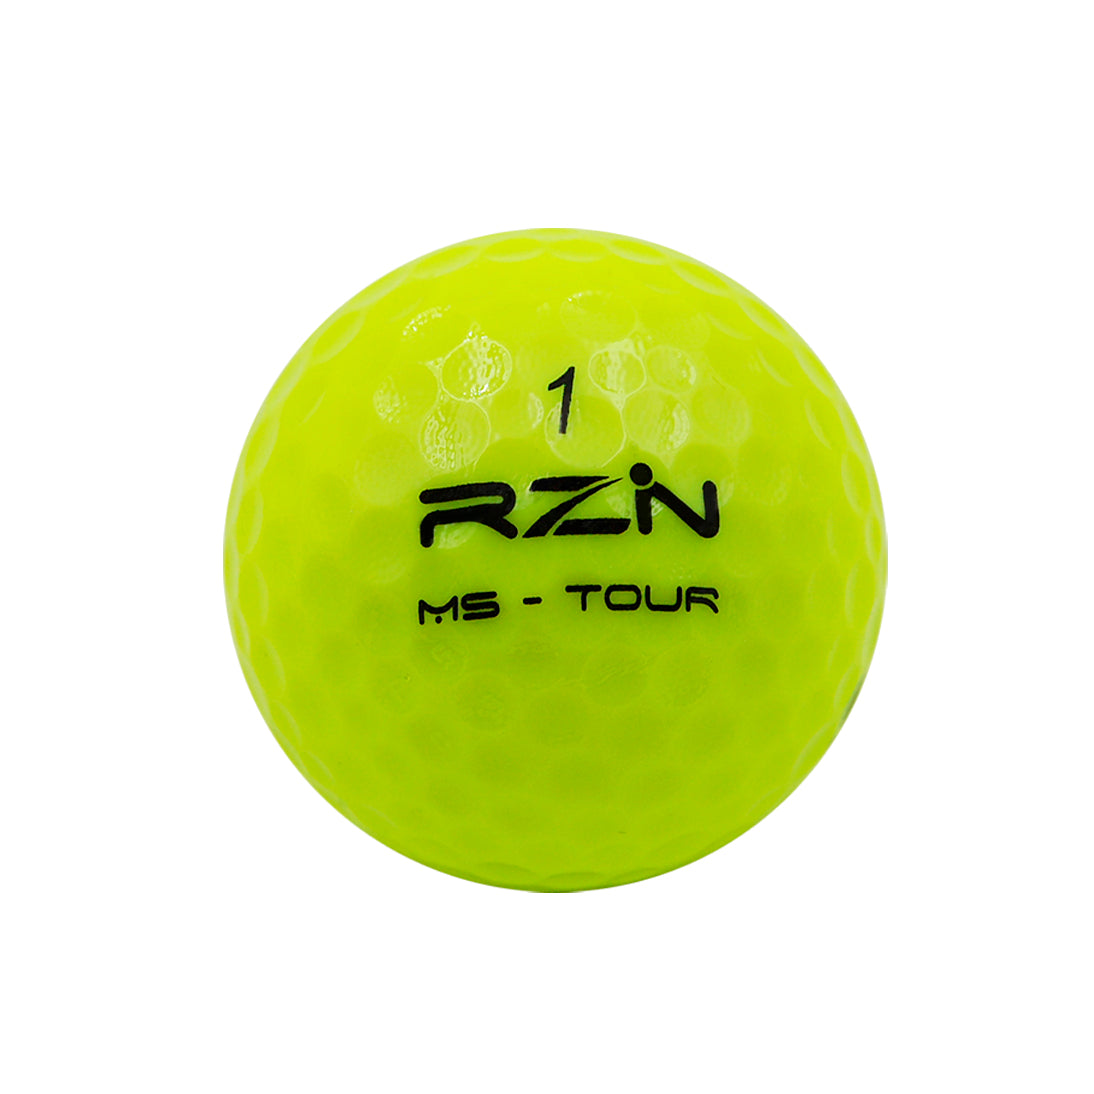 RZN MS Tour Yellow Golf Ball, 12 Pack